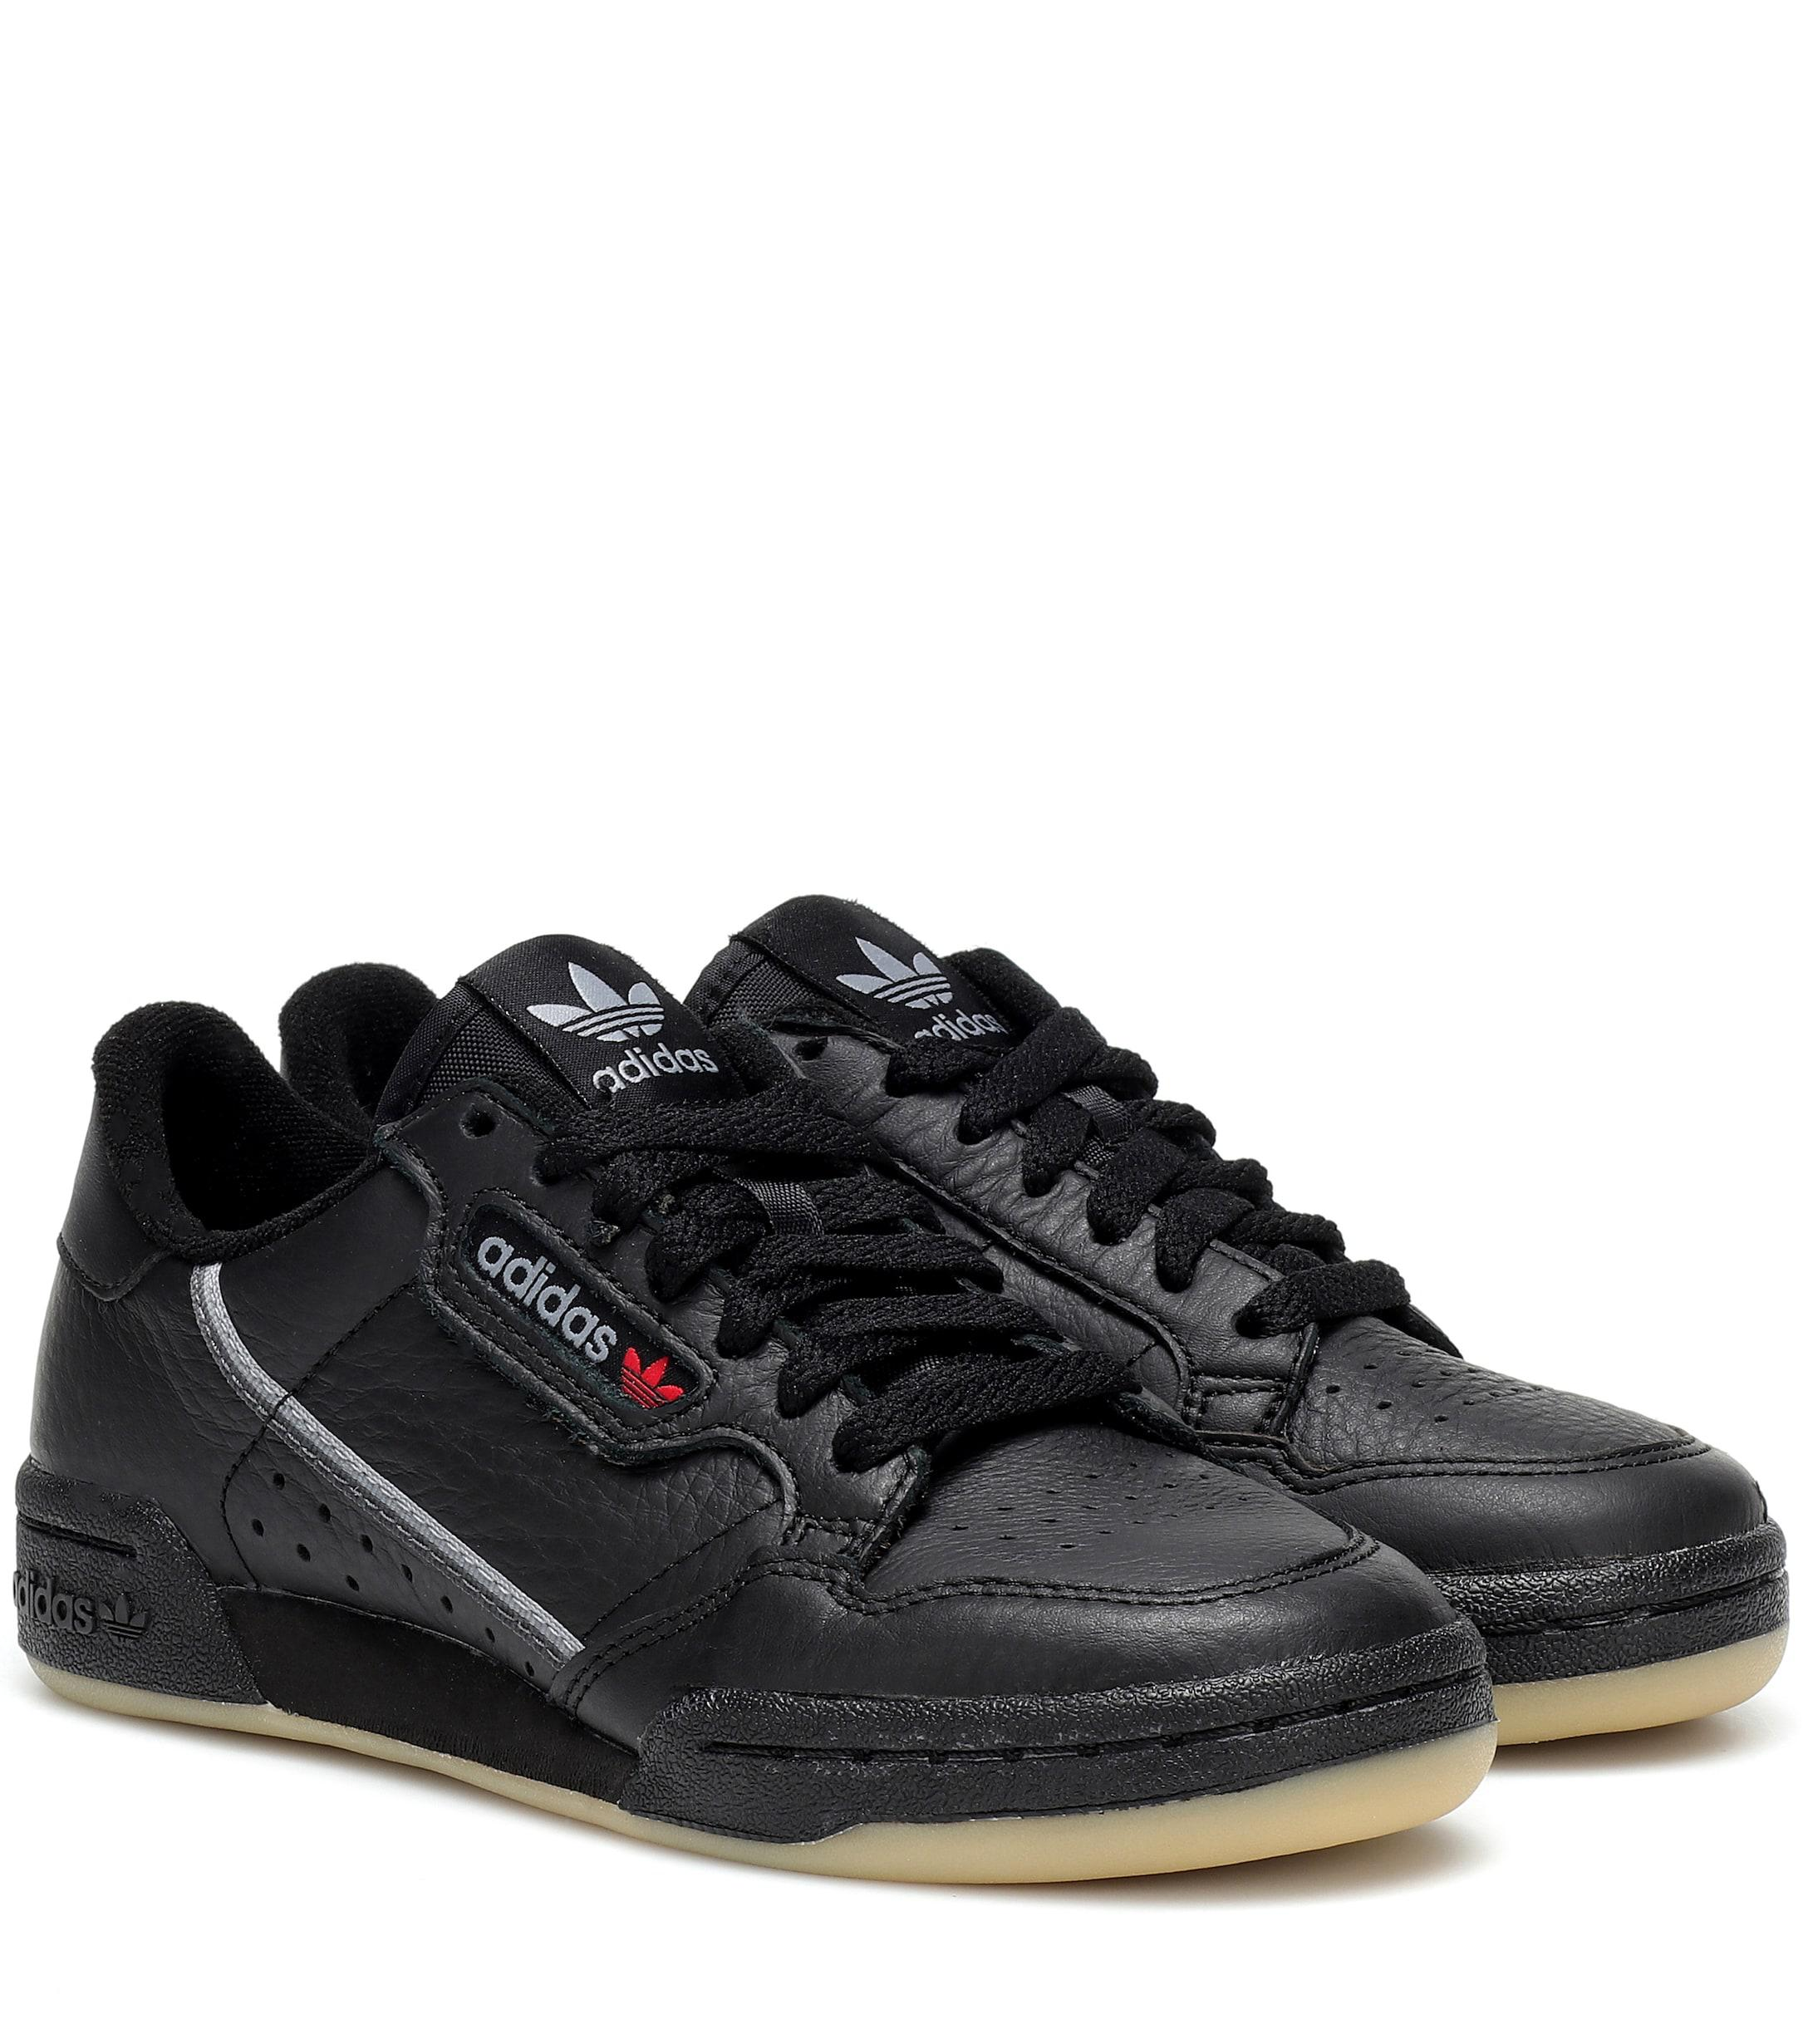 0d8c78d5f758fc Adidas Originals Continental 80 Leather Sneakers in Black - Lyst